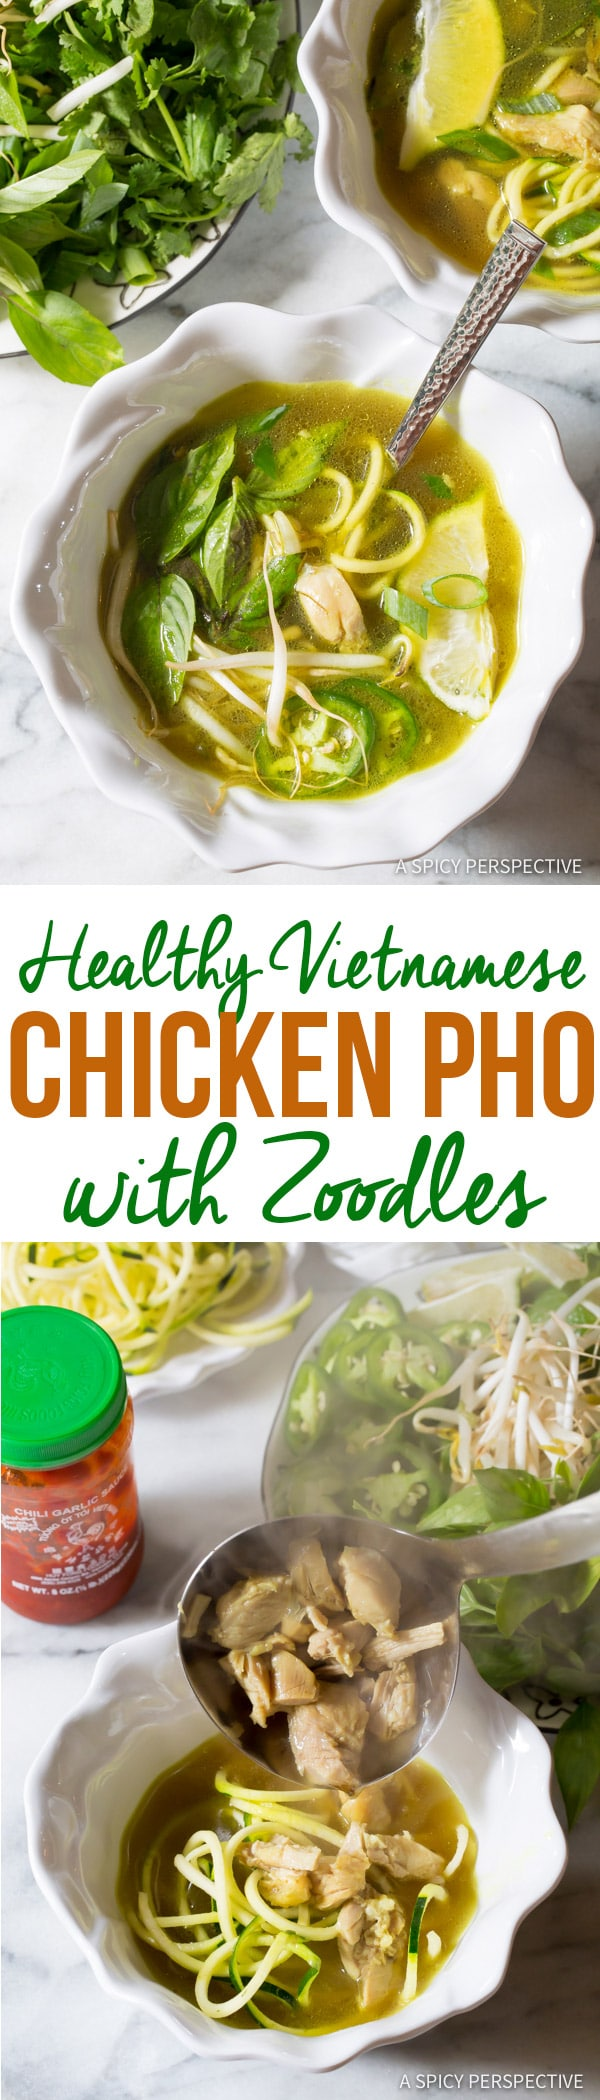 Healthy Vietnamese Chicken Pho with Zoodles | ASpicyPerspective.com